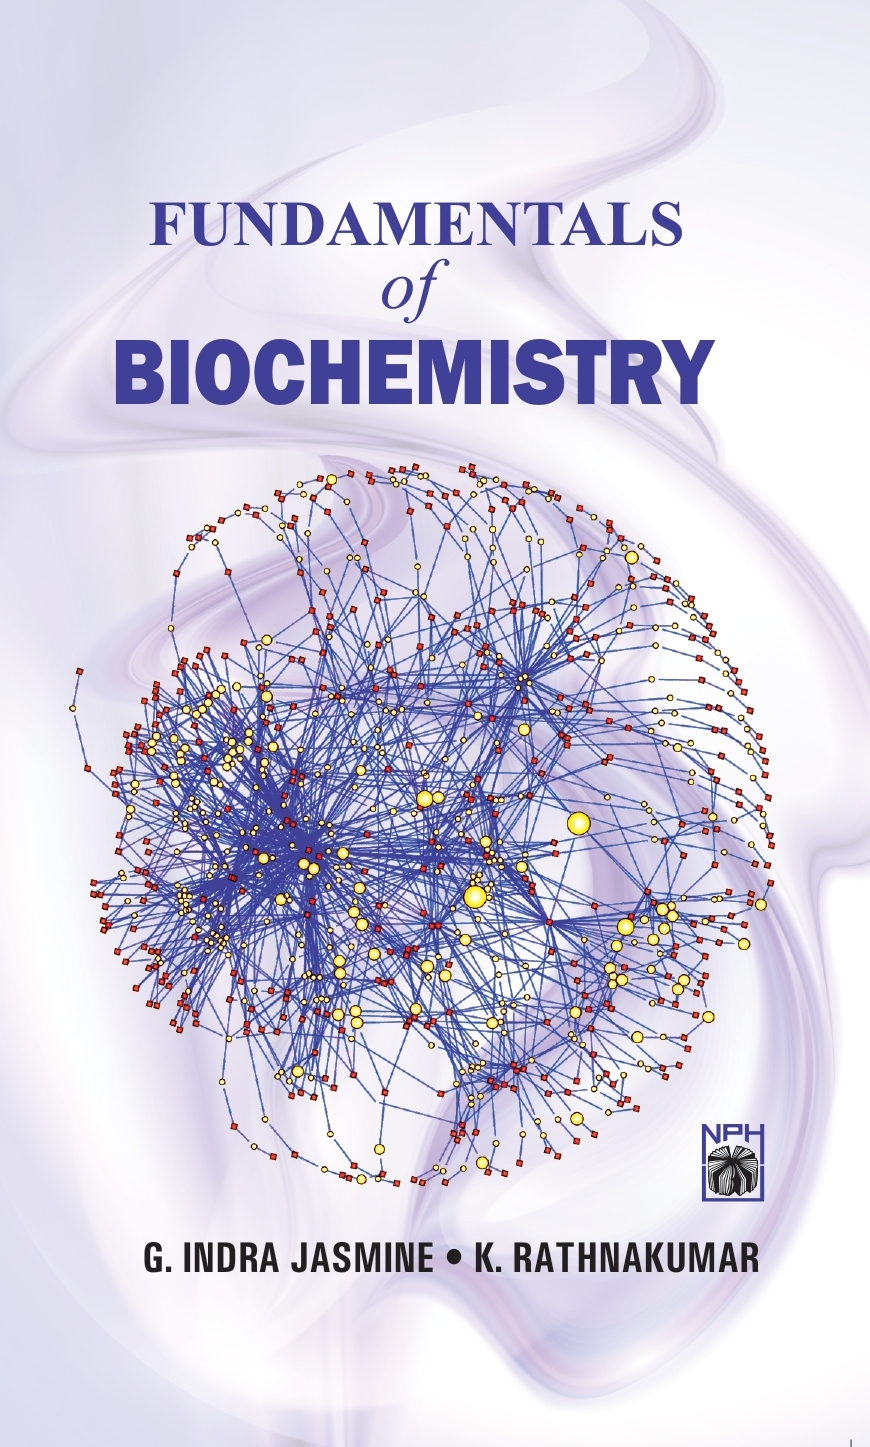 Fundamental of Biochemistry